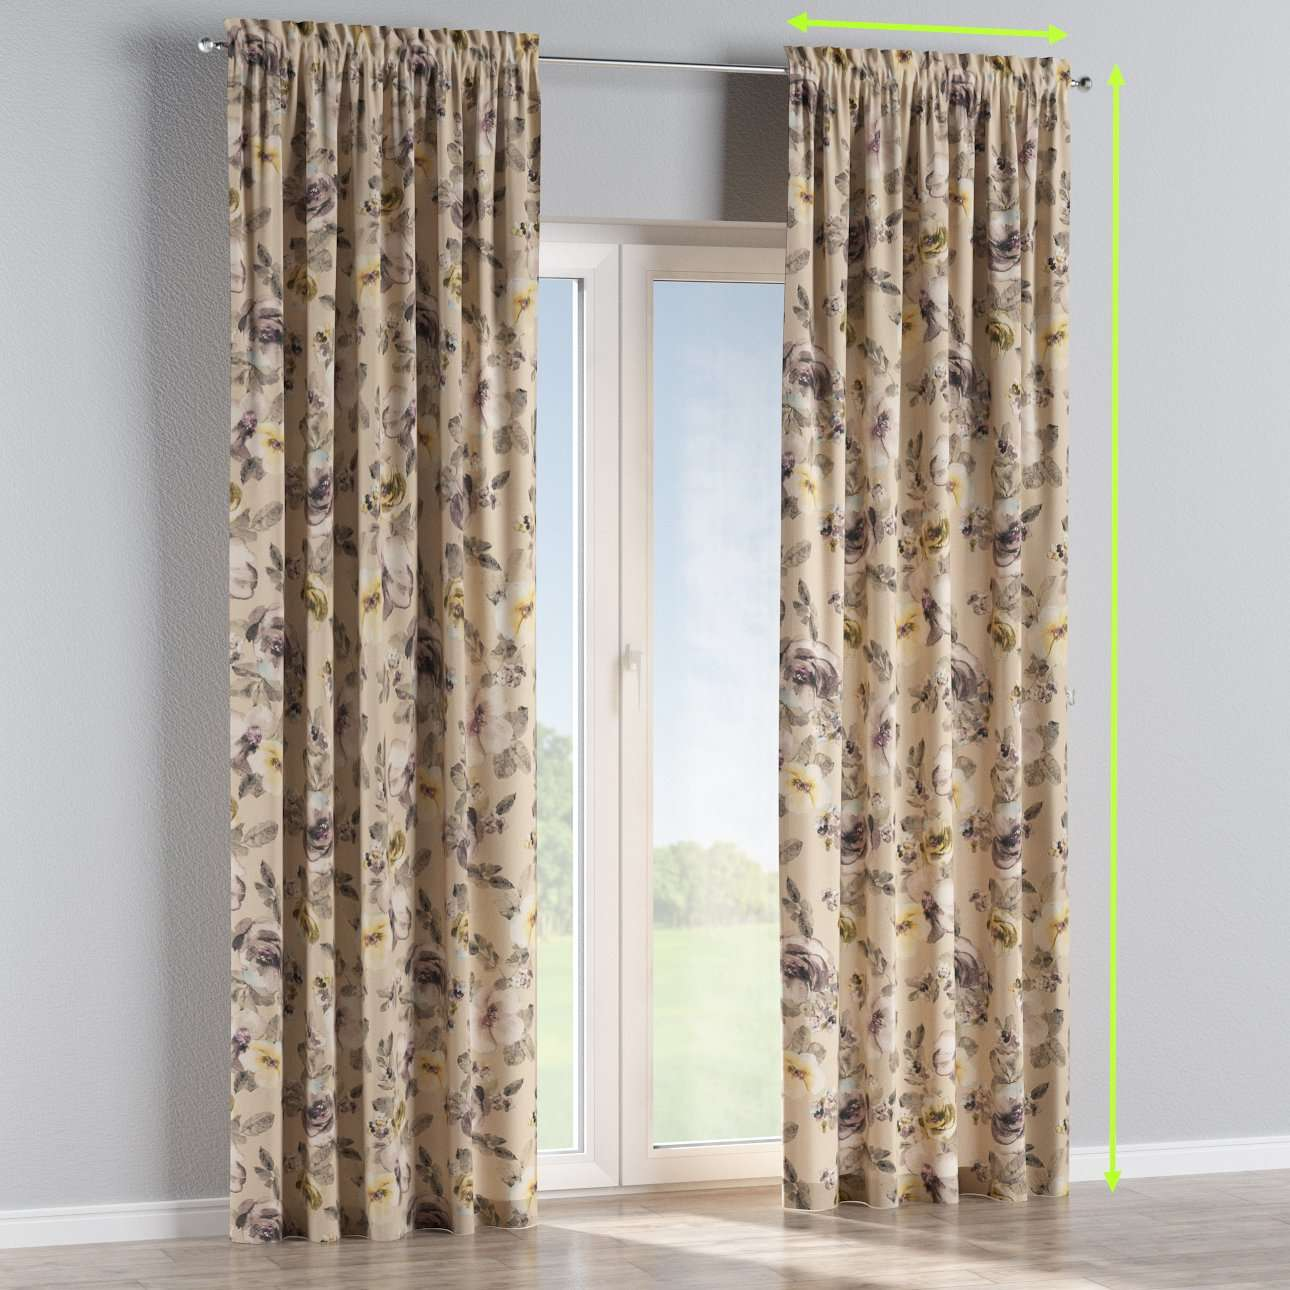 Slot and frill curtains in collection Londres, fabric: 140-44